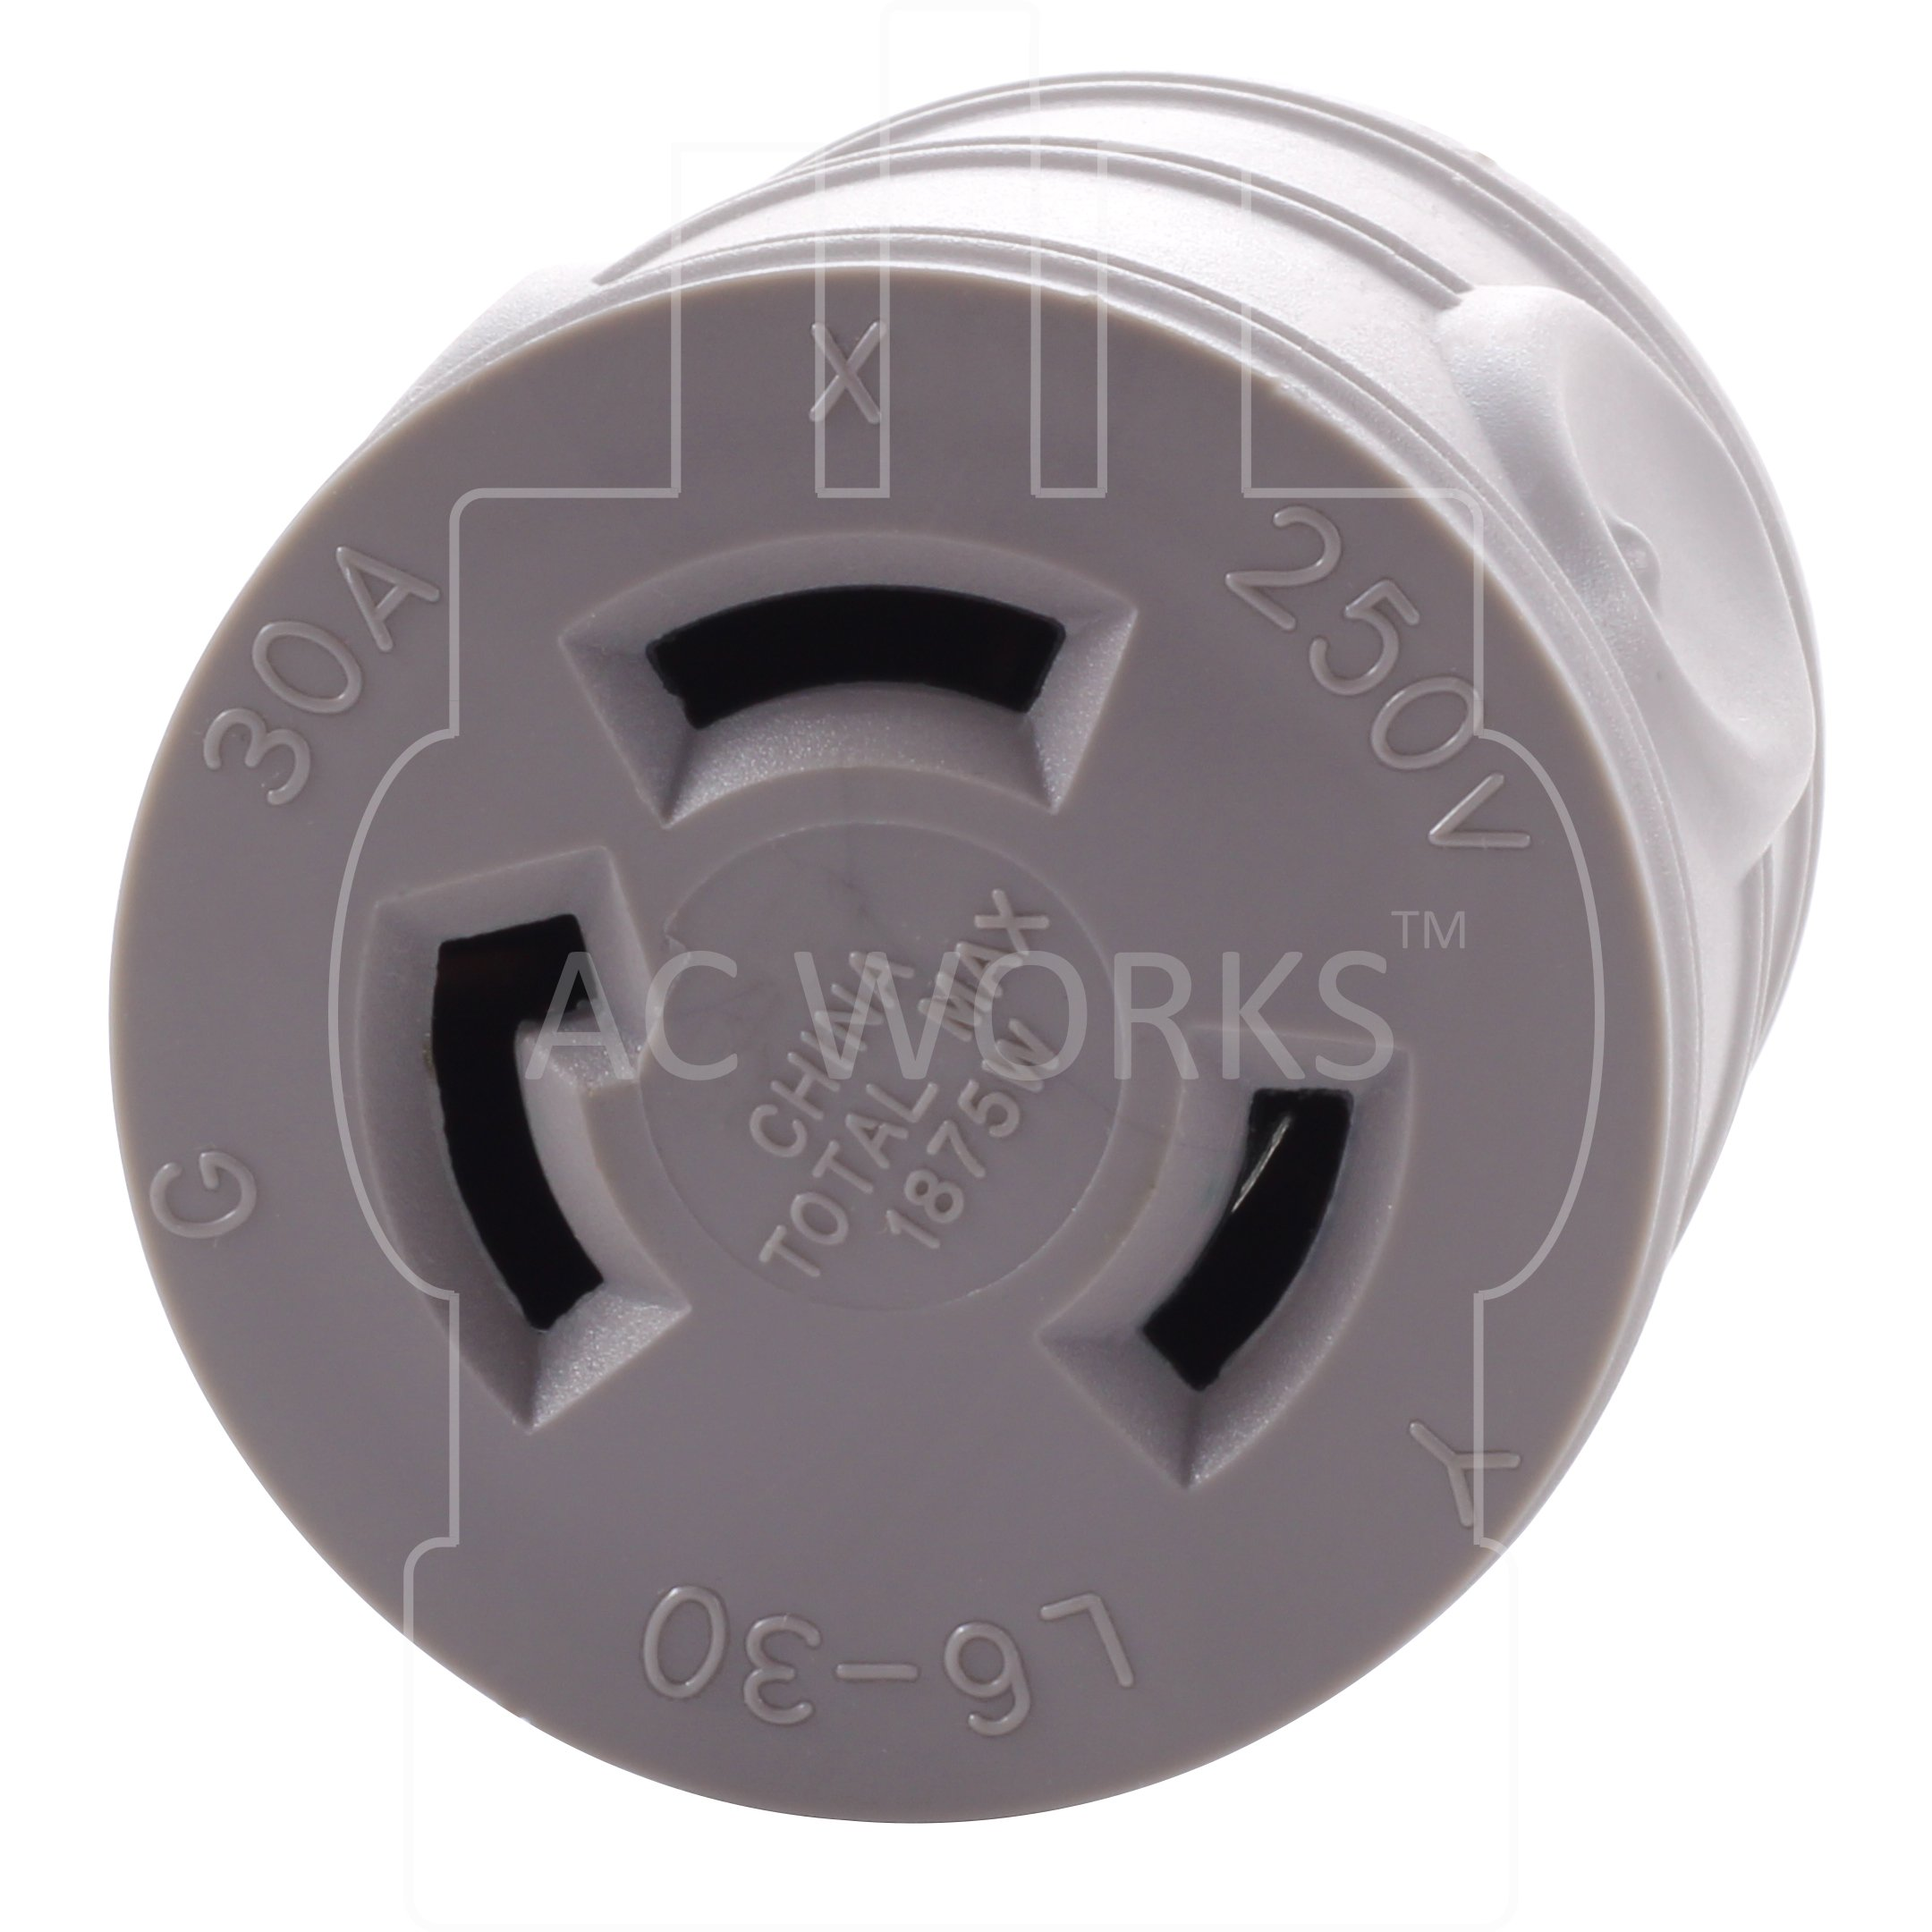 AC WORKS [EV515L630] EVSE Upgrade Electric Vehicle Charging Adapter 15Amp Household Plug to L6-30R Female Connector by AC WORKS (Image #4)